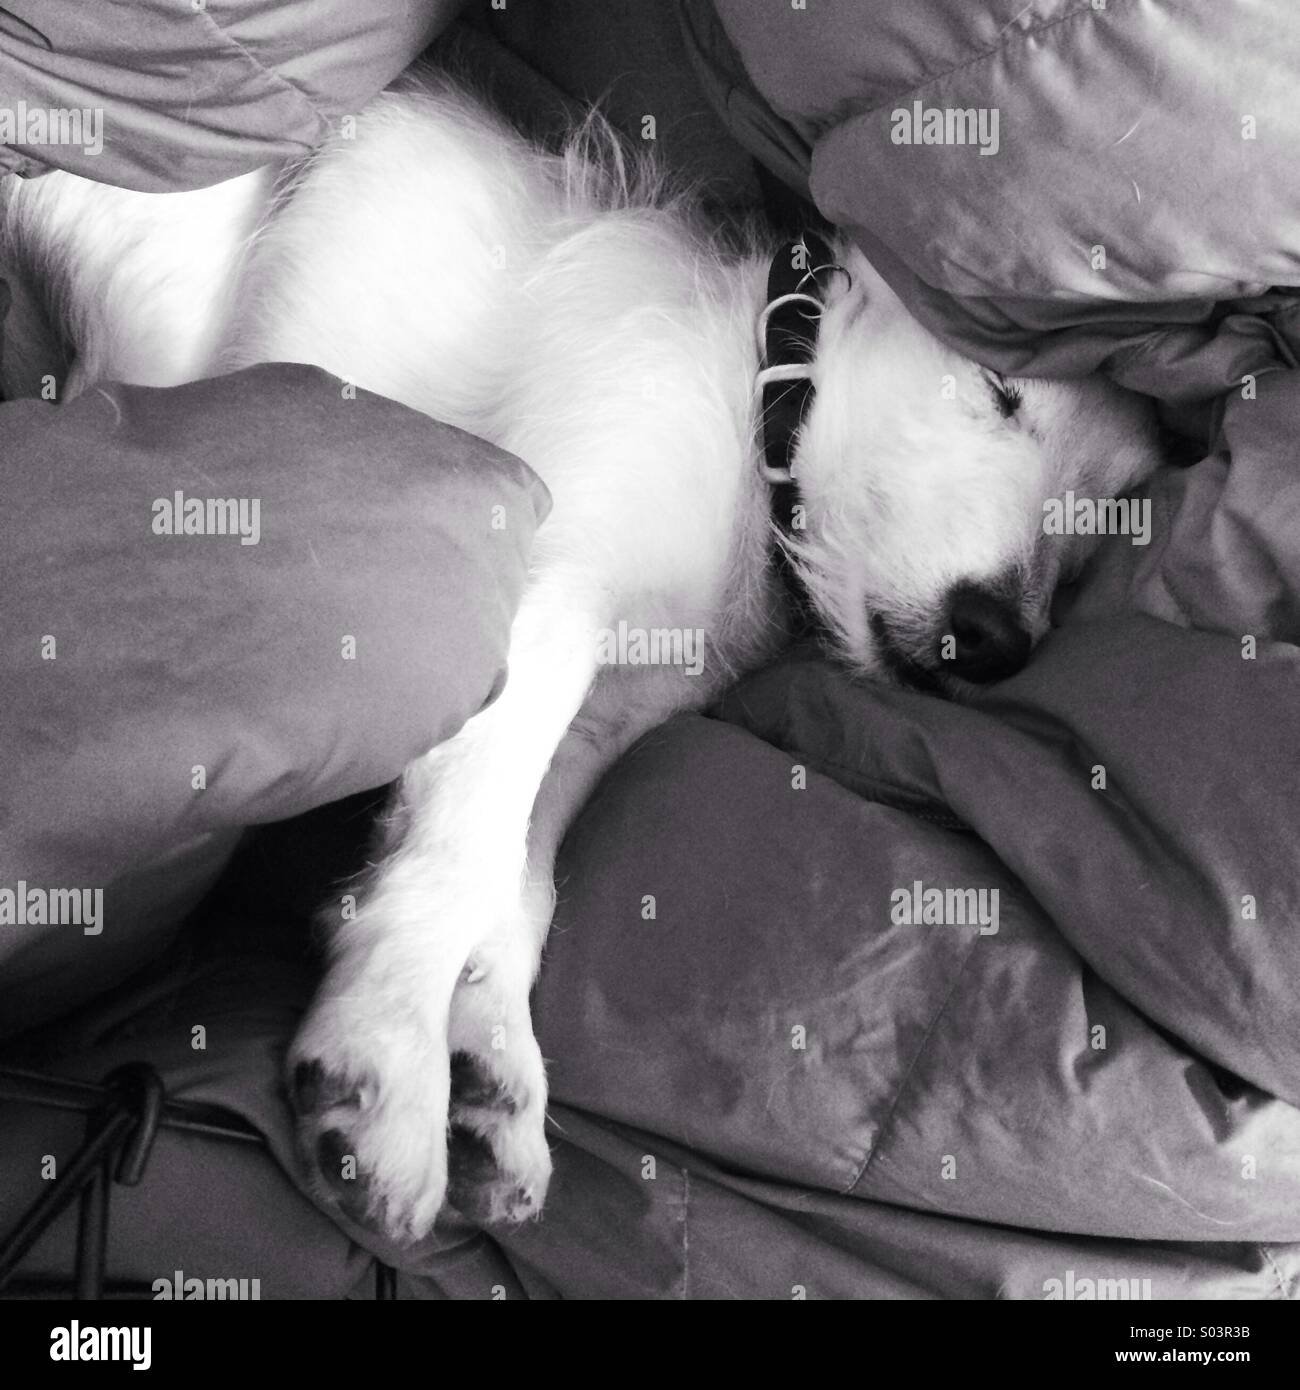 White dog asleep in pillows - Stock Image